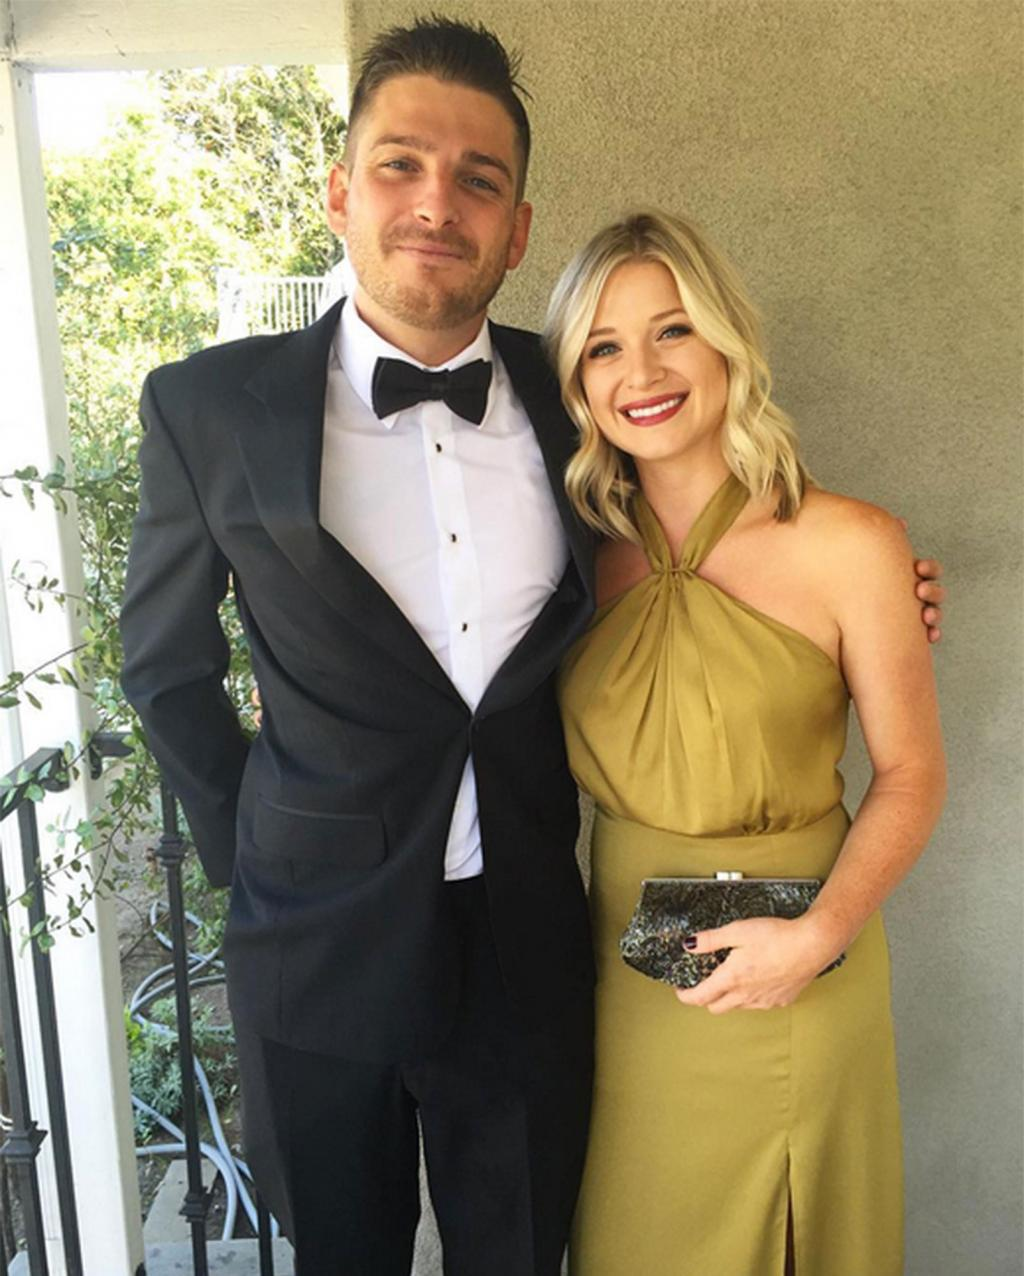 Laguna Beach's Talan Torriero and Wife Danielle Expecting a Baby Boy